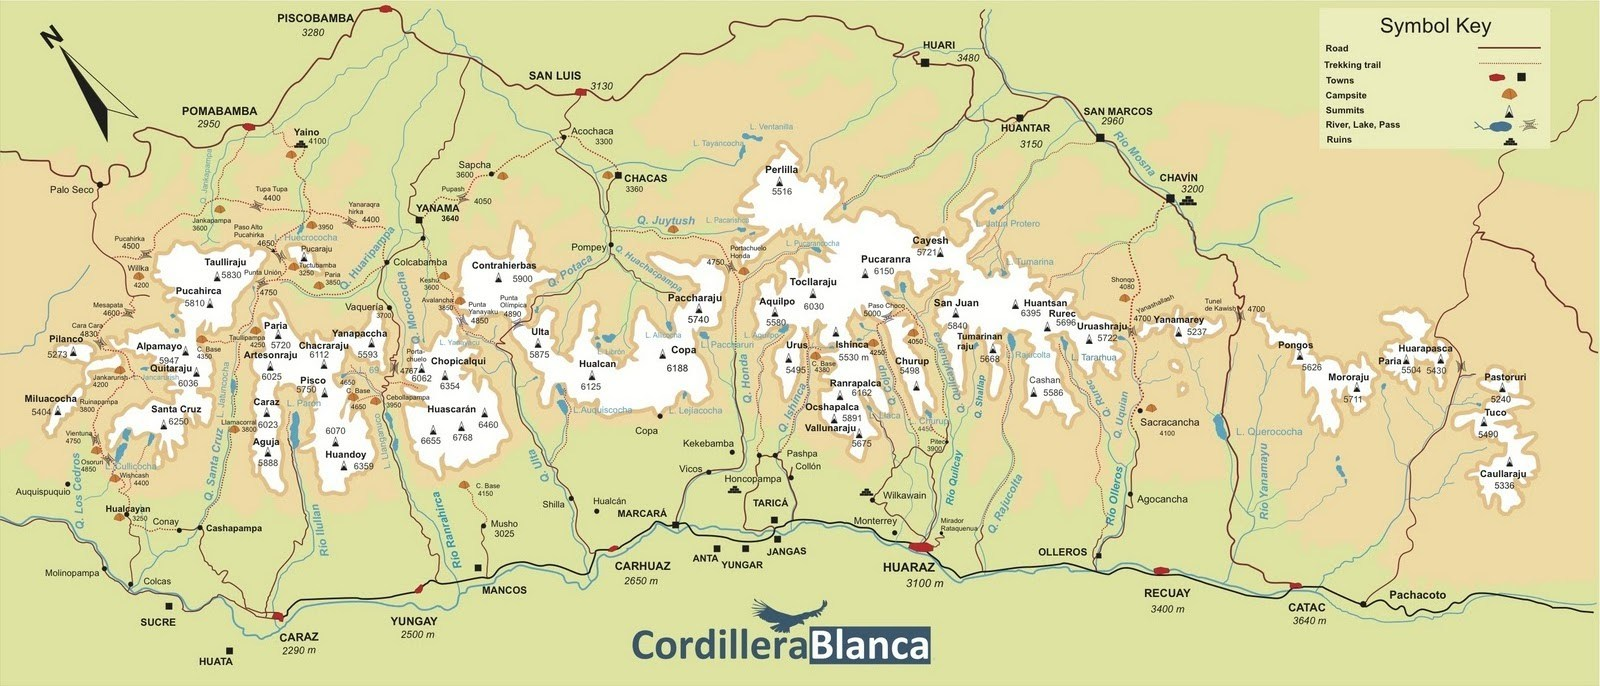 Cordillera-Blanca-Overview-Map.jpg